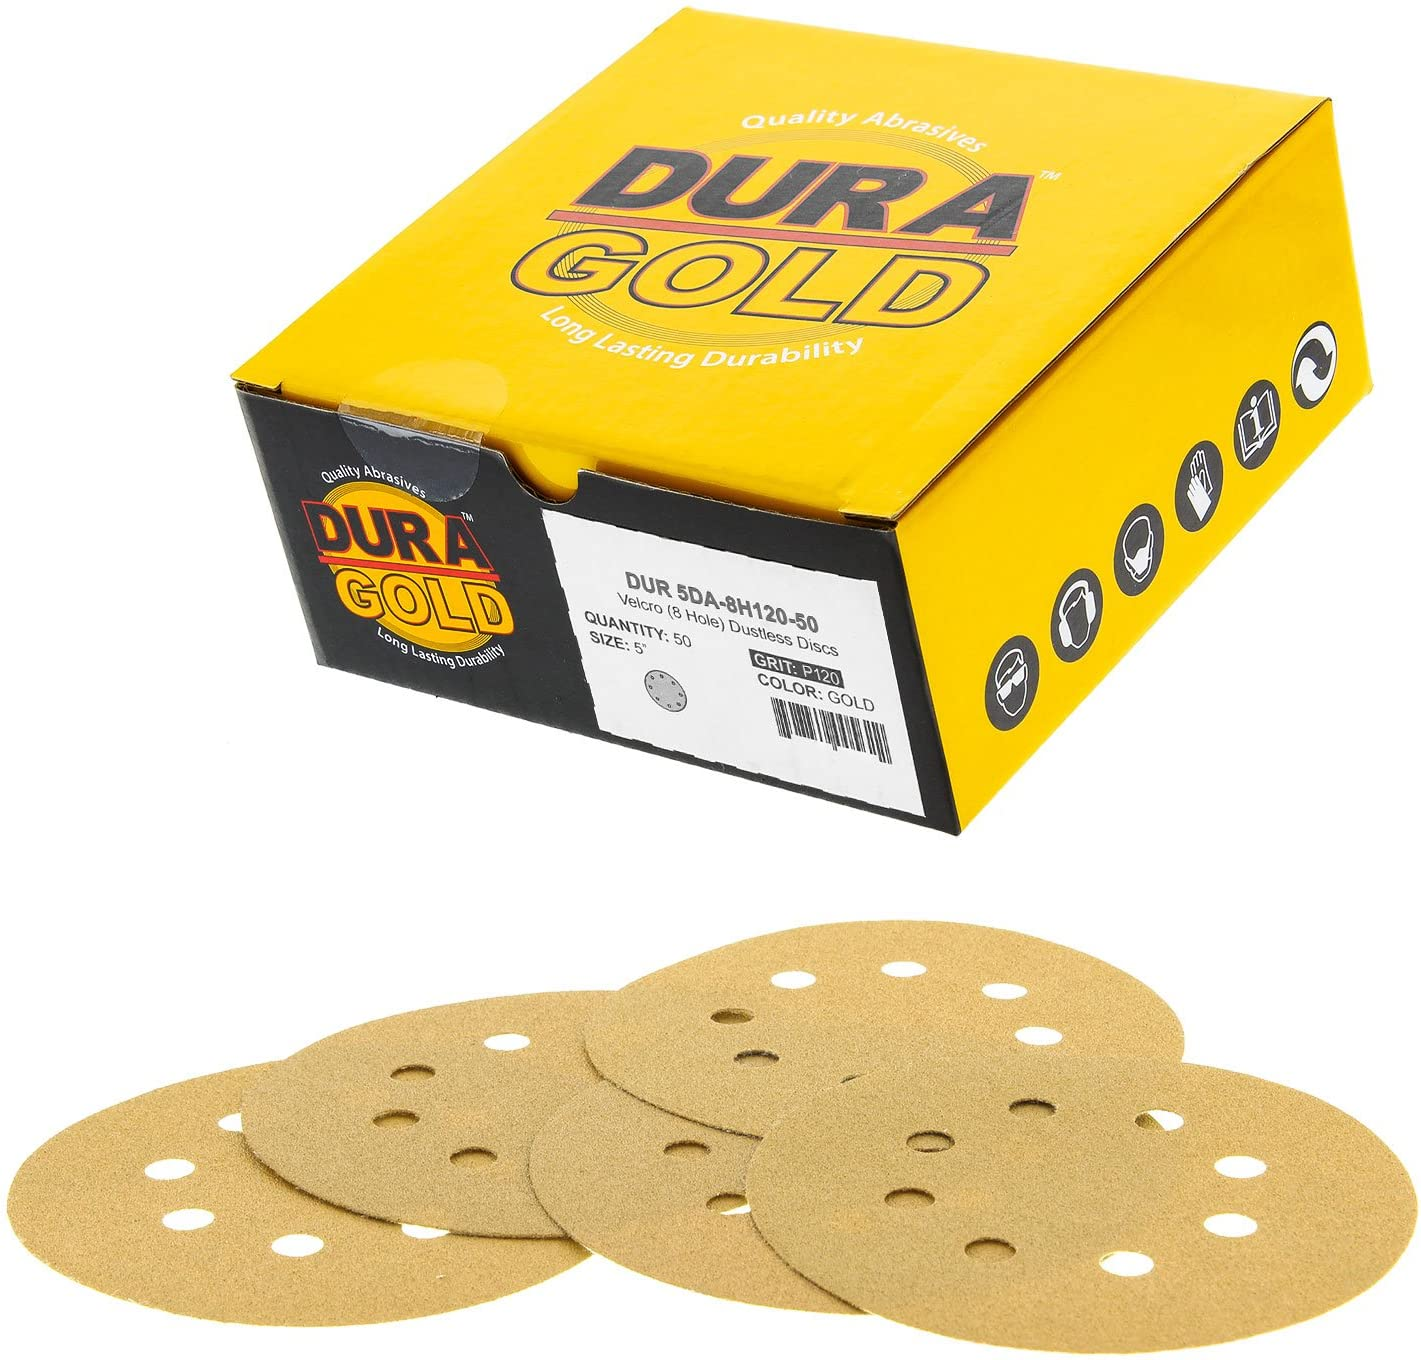 "Dura-Gold Premium - 120 Grit - 5"" Gold Sanding Discs - 8-Hole Dustless Hook and Loop for DA Sander - Box of 50 Finishing Sandpaper Discs for Woodworking or Automotive 81PJelDXK4L"